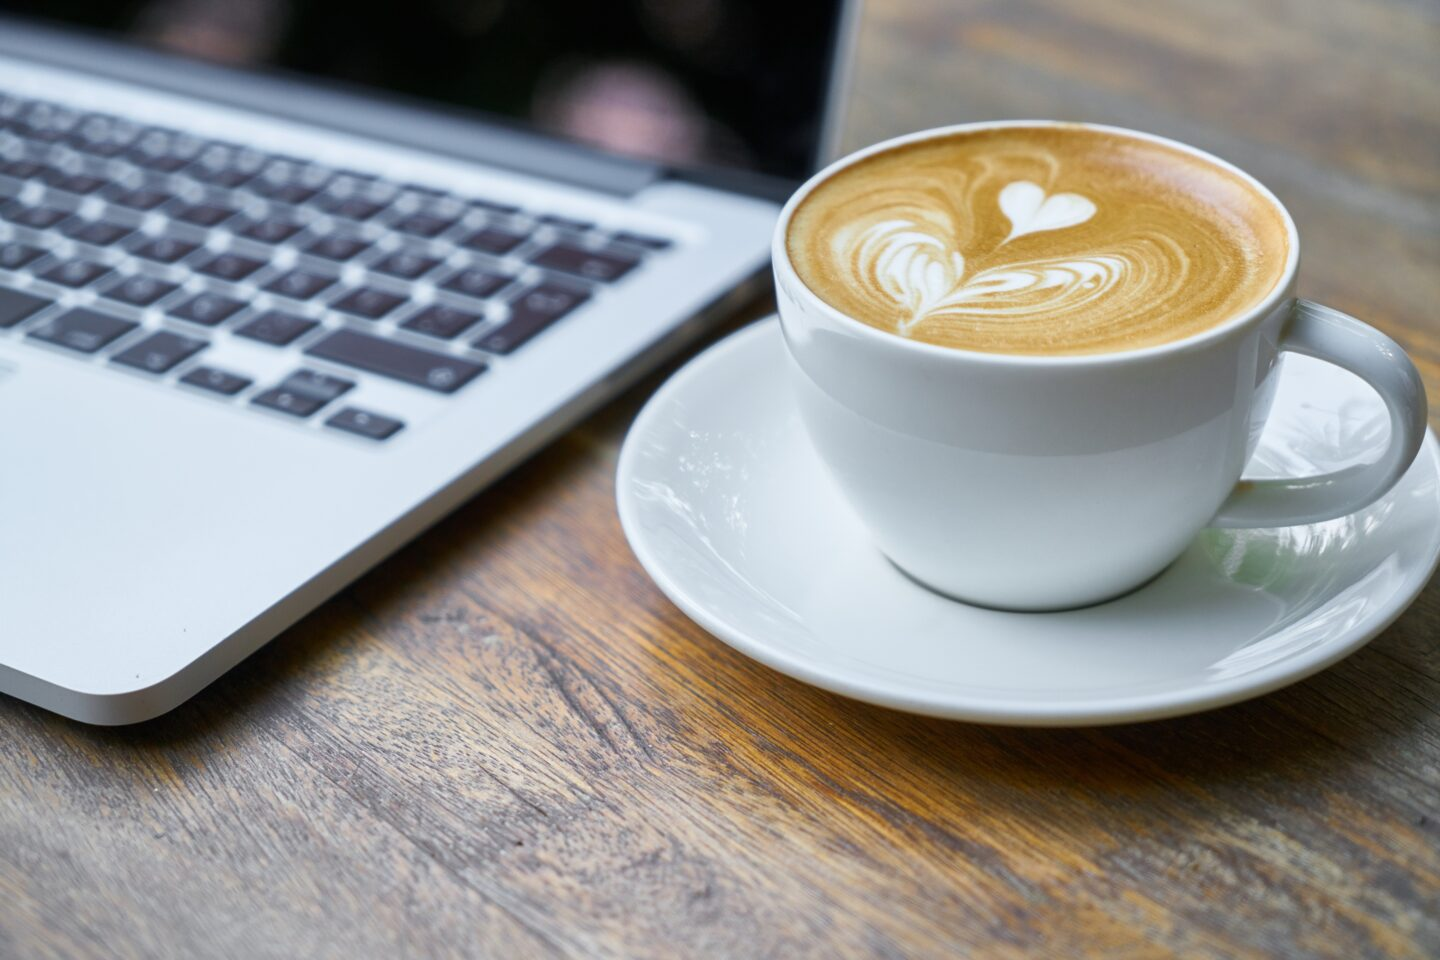 Coffee Cup and Laptop